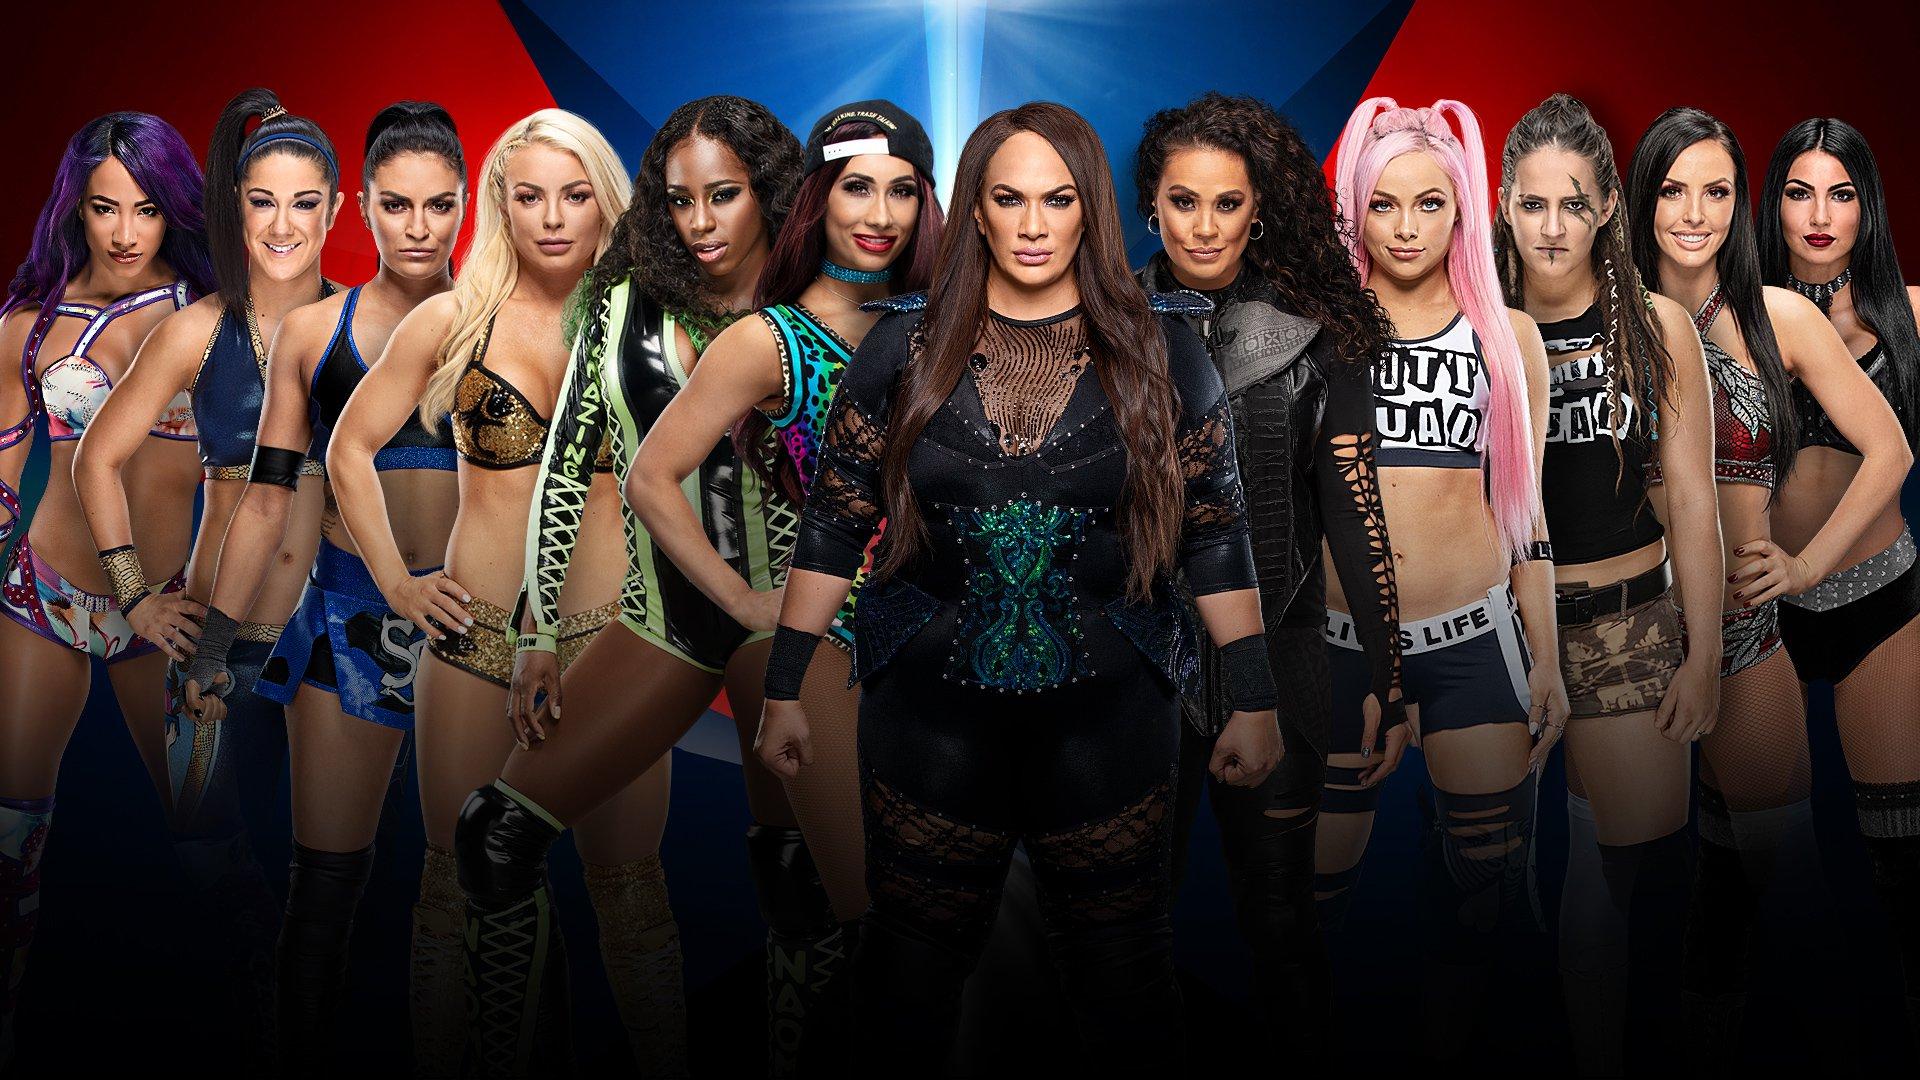 The Elimination Chamber Match to crown the first-ever Women's Tag Team Champions